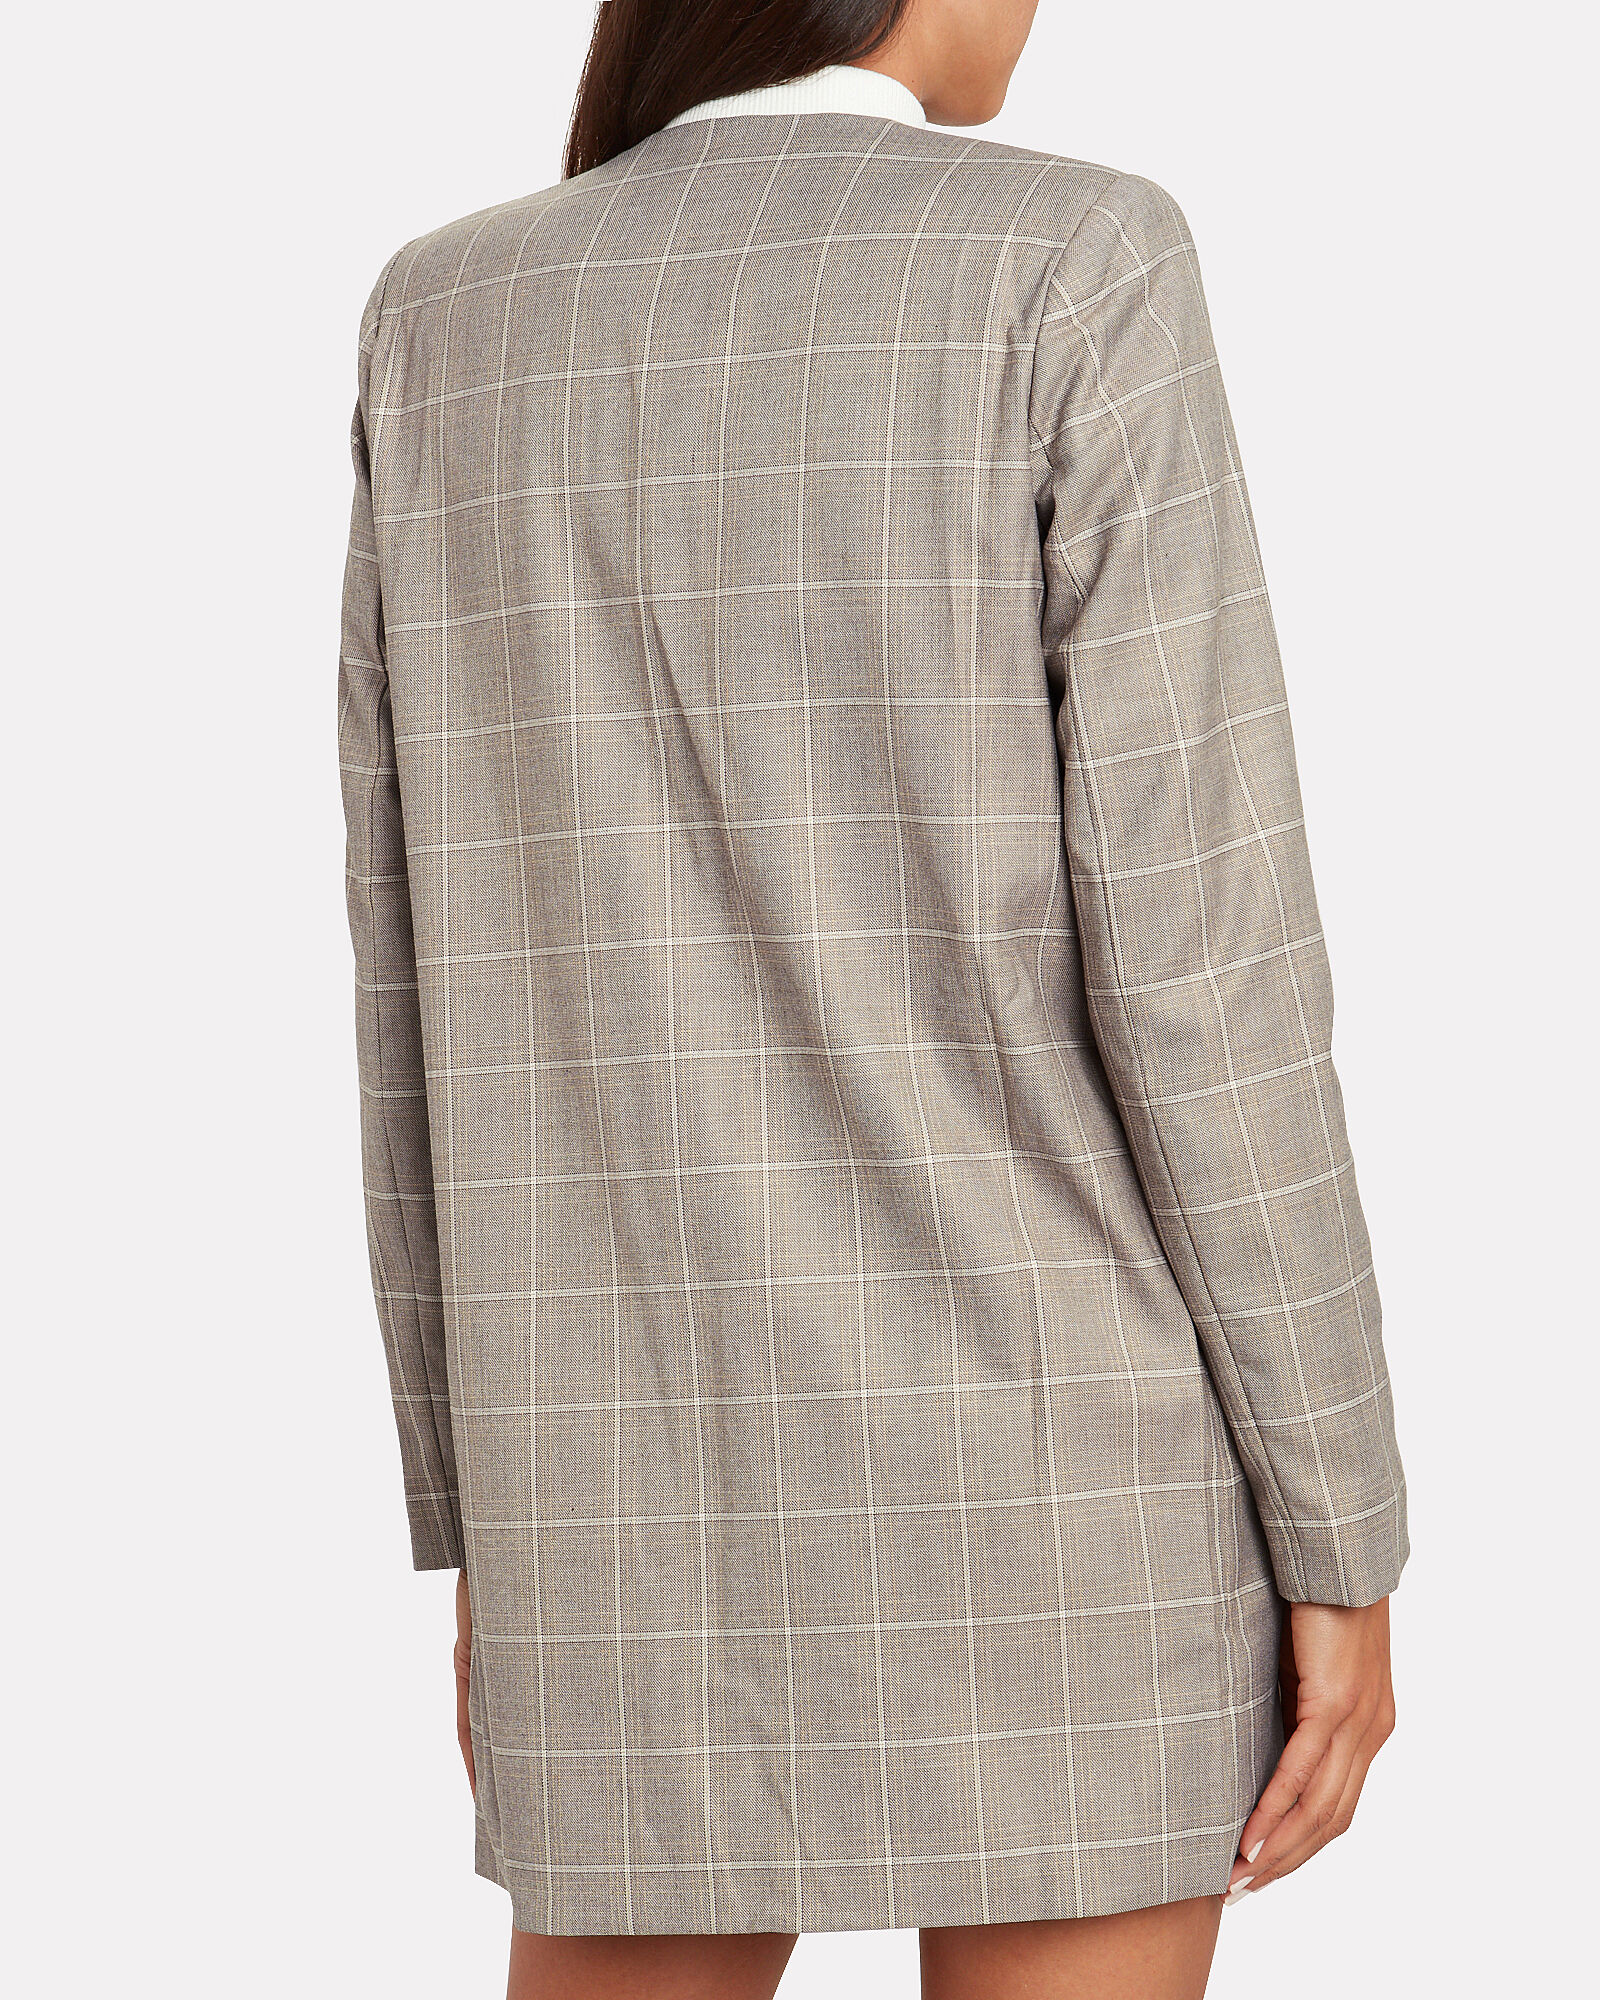 Mother Tongue Checked Blazer, BEIGE/CHECK, hi-res